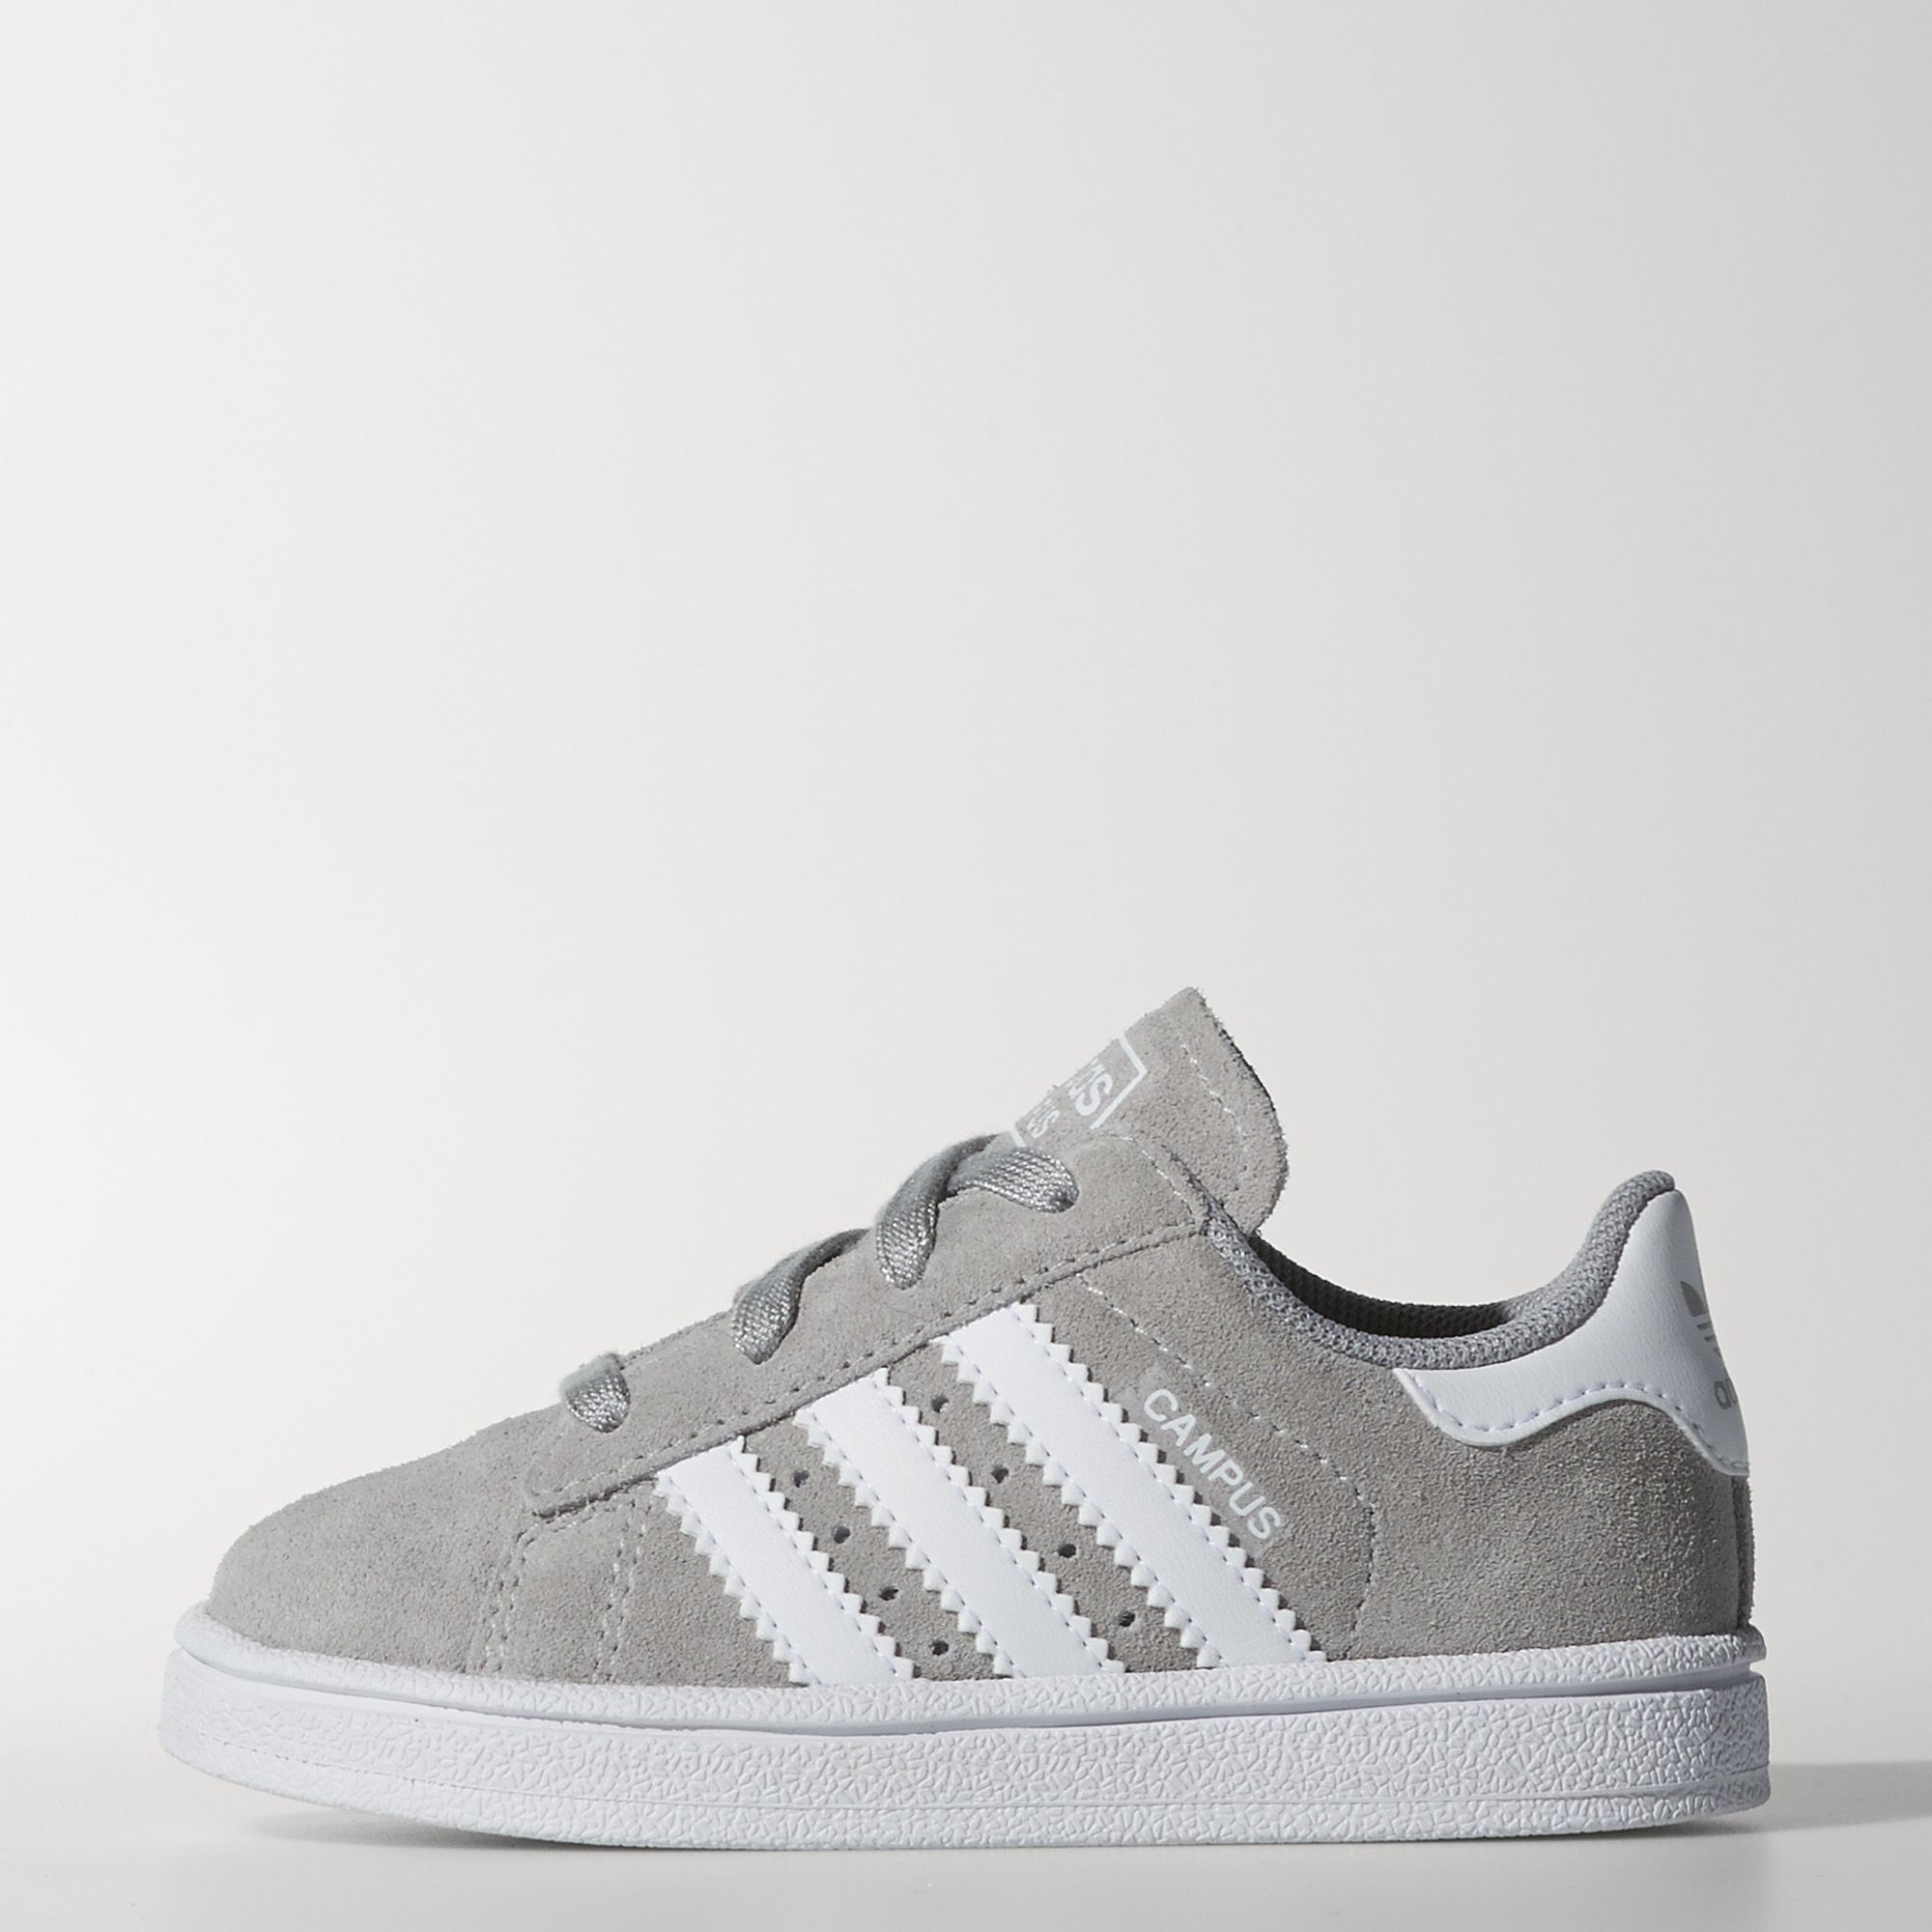 adidas nmd r1 white grey adidas gazelle toddler shoes